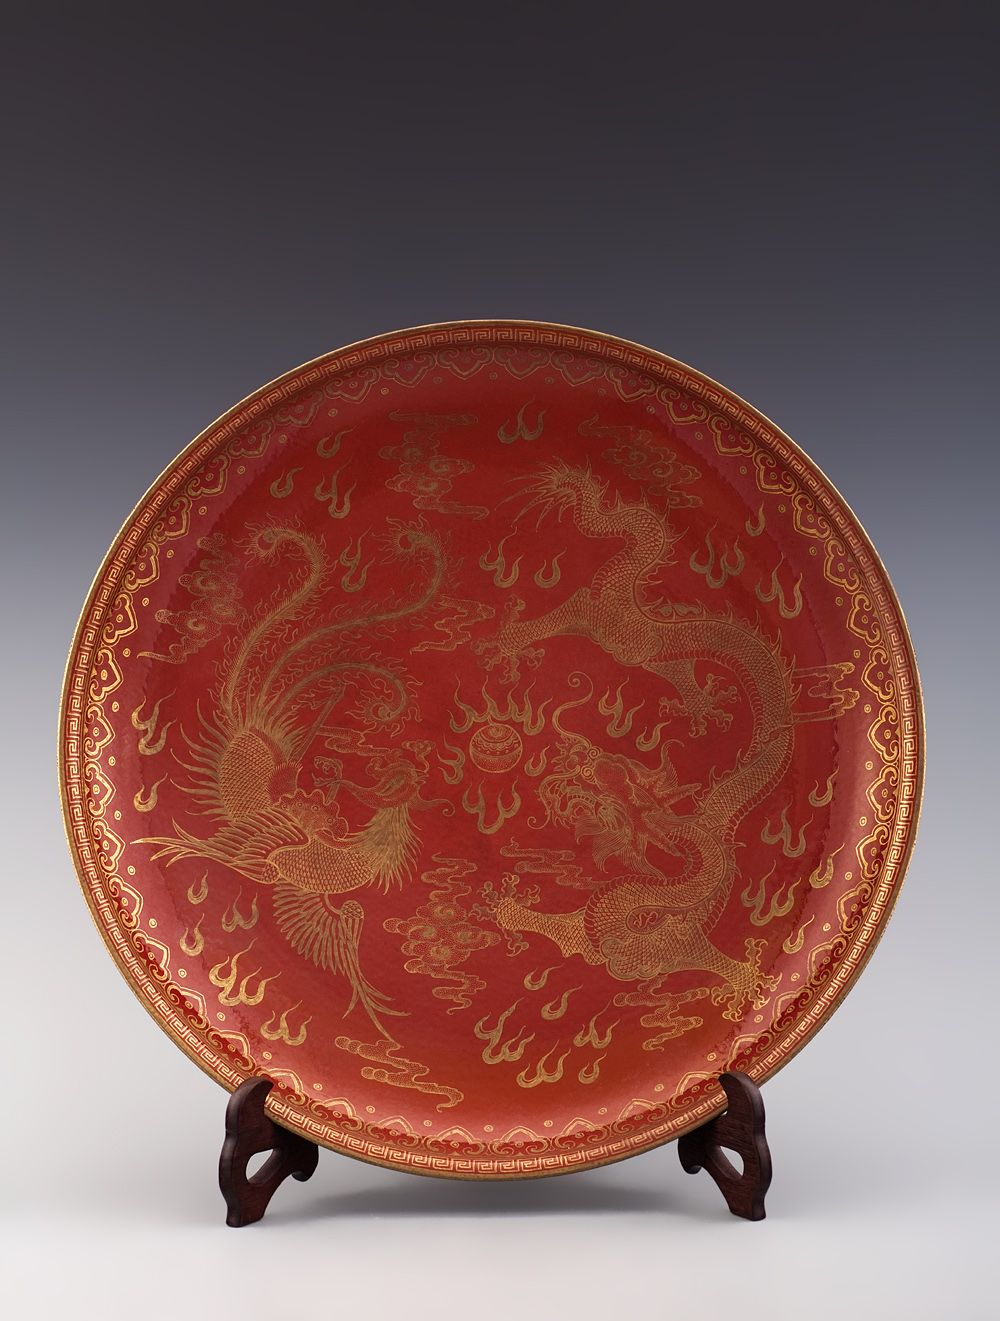 091 A Red Glazed With Gold Dragon And Phoenix Dish Qing Dynasty Qian Long 1736 1795 49 8 Cm 19 1 2 In Chinese Pottery Ancient China Chinese Ceramics